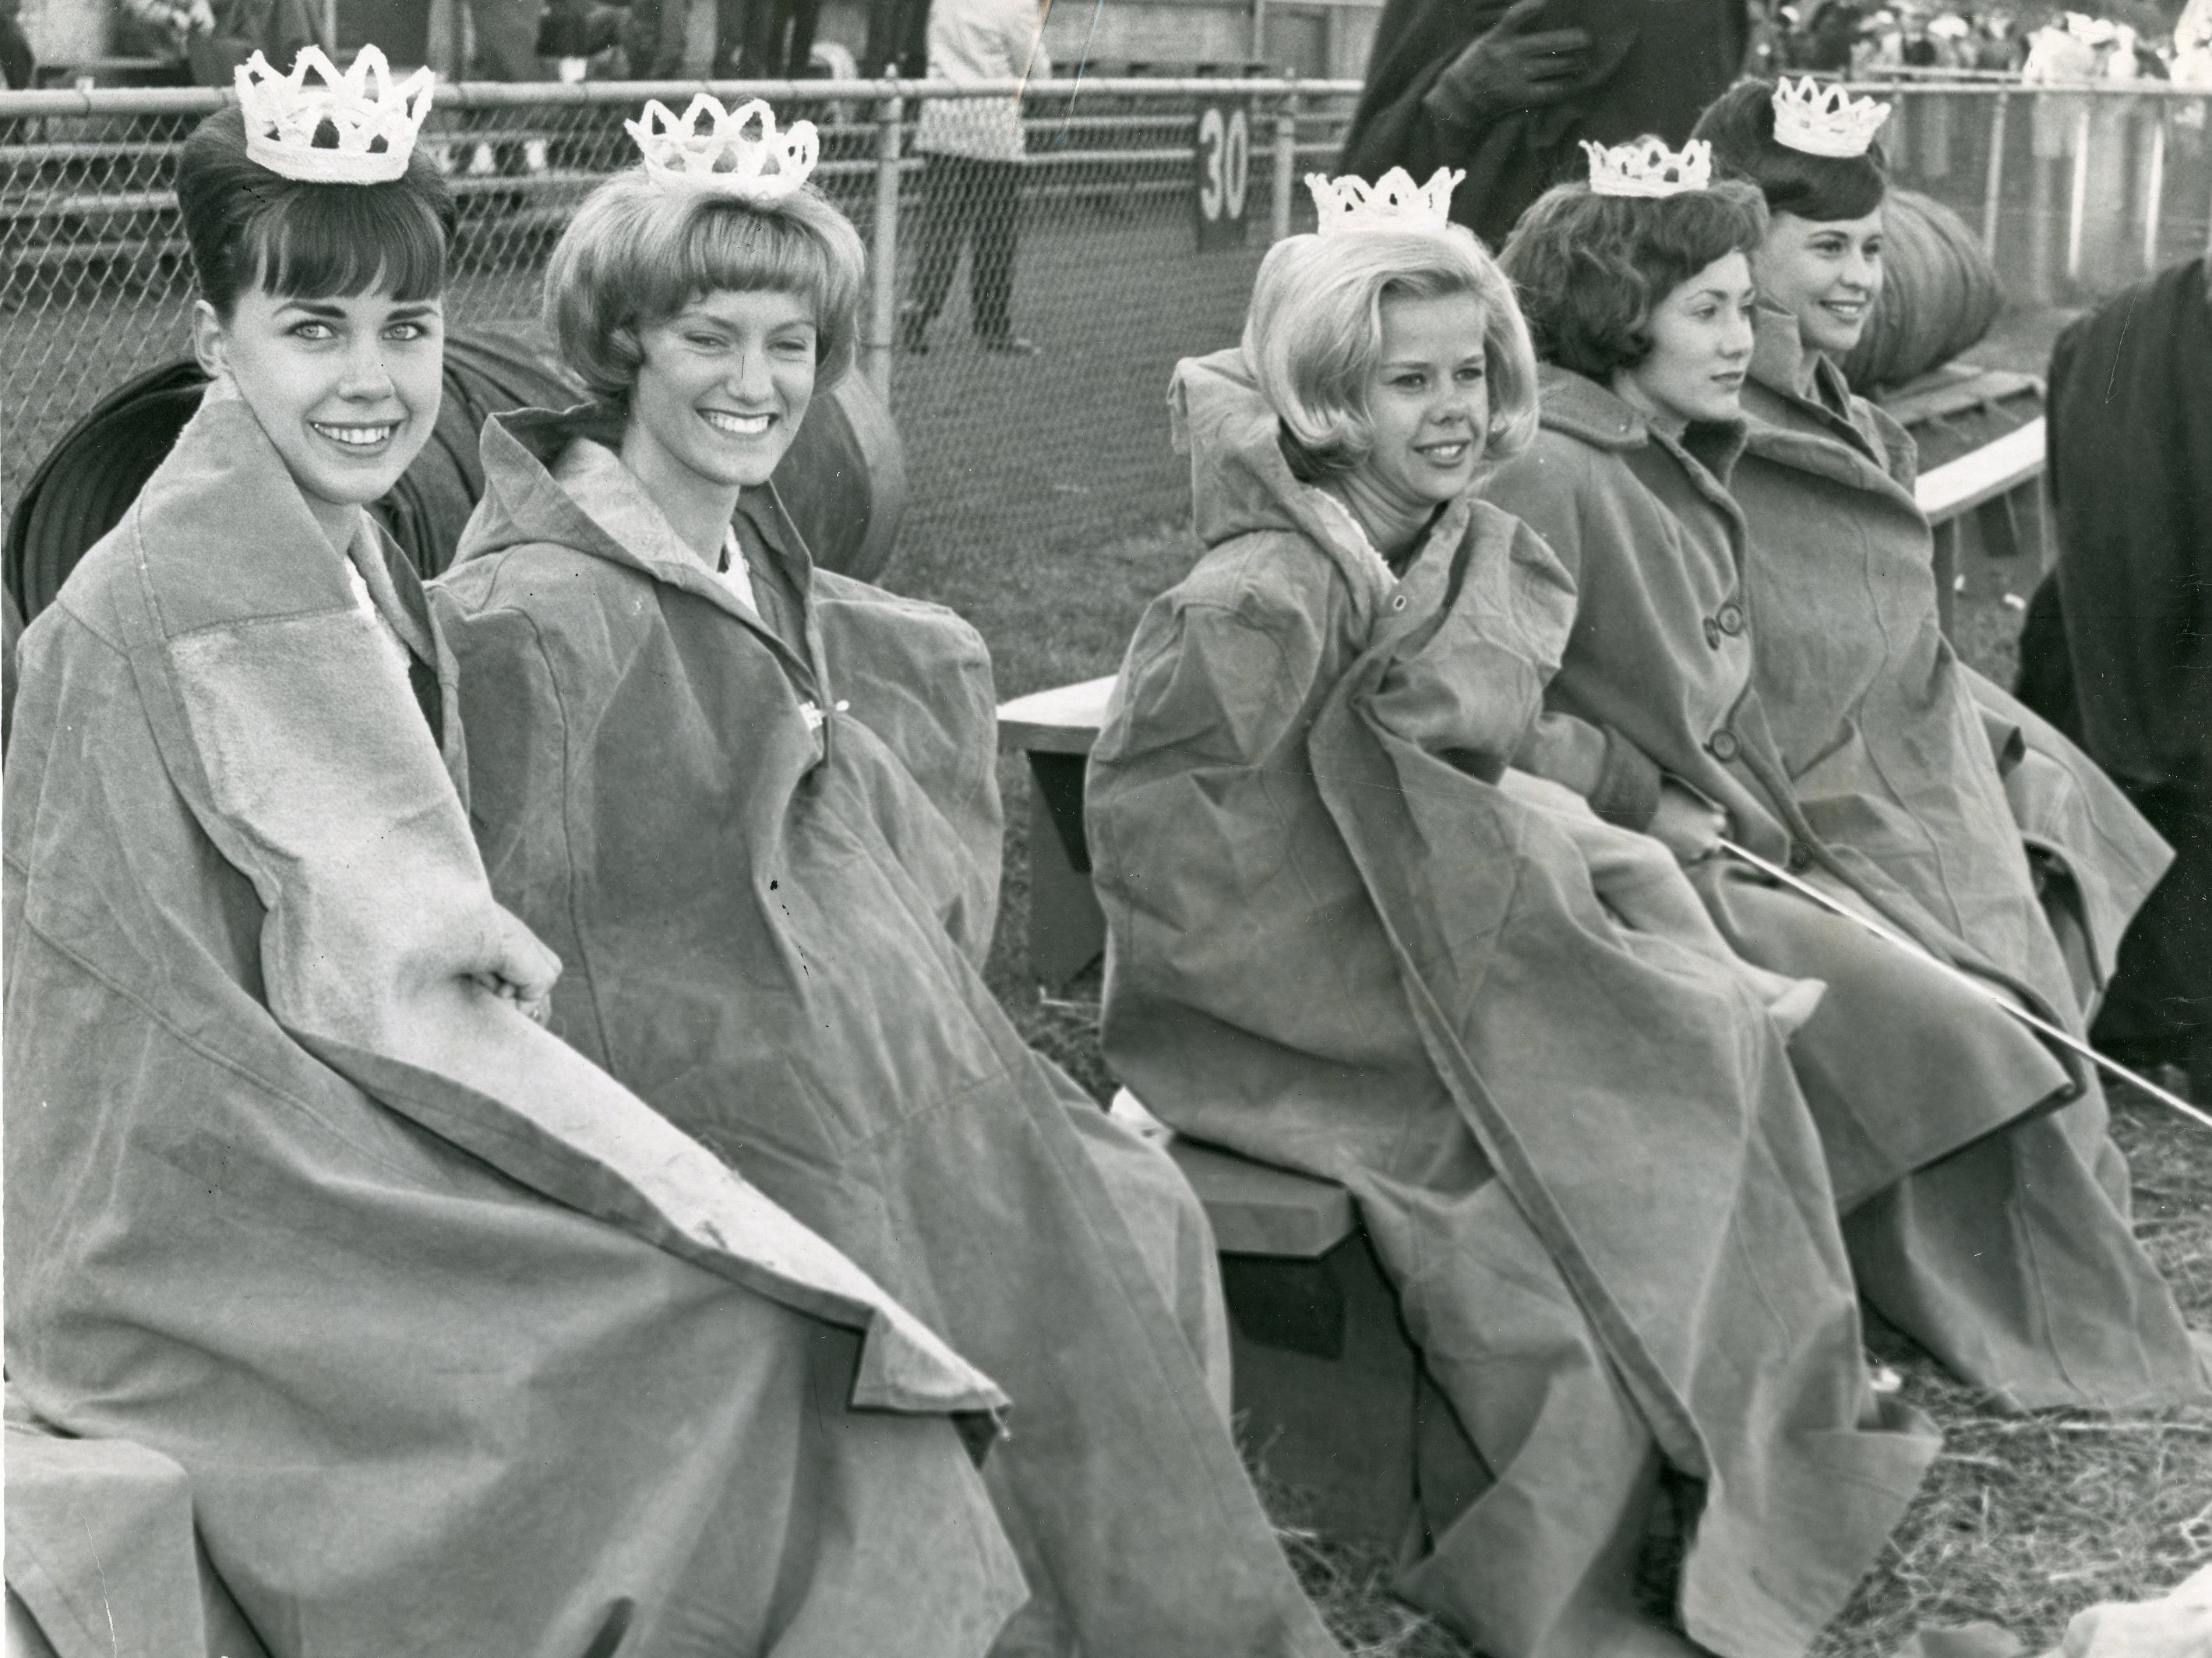 UT majorettes try to keep warm during a November, 1964 game. Pictured are Patti Stuart, Melinda Hewgley, Mary Nicholon, Valerie Foster and Elaine White.